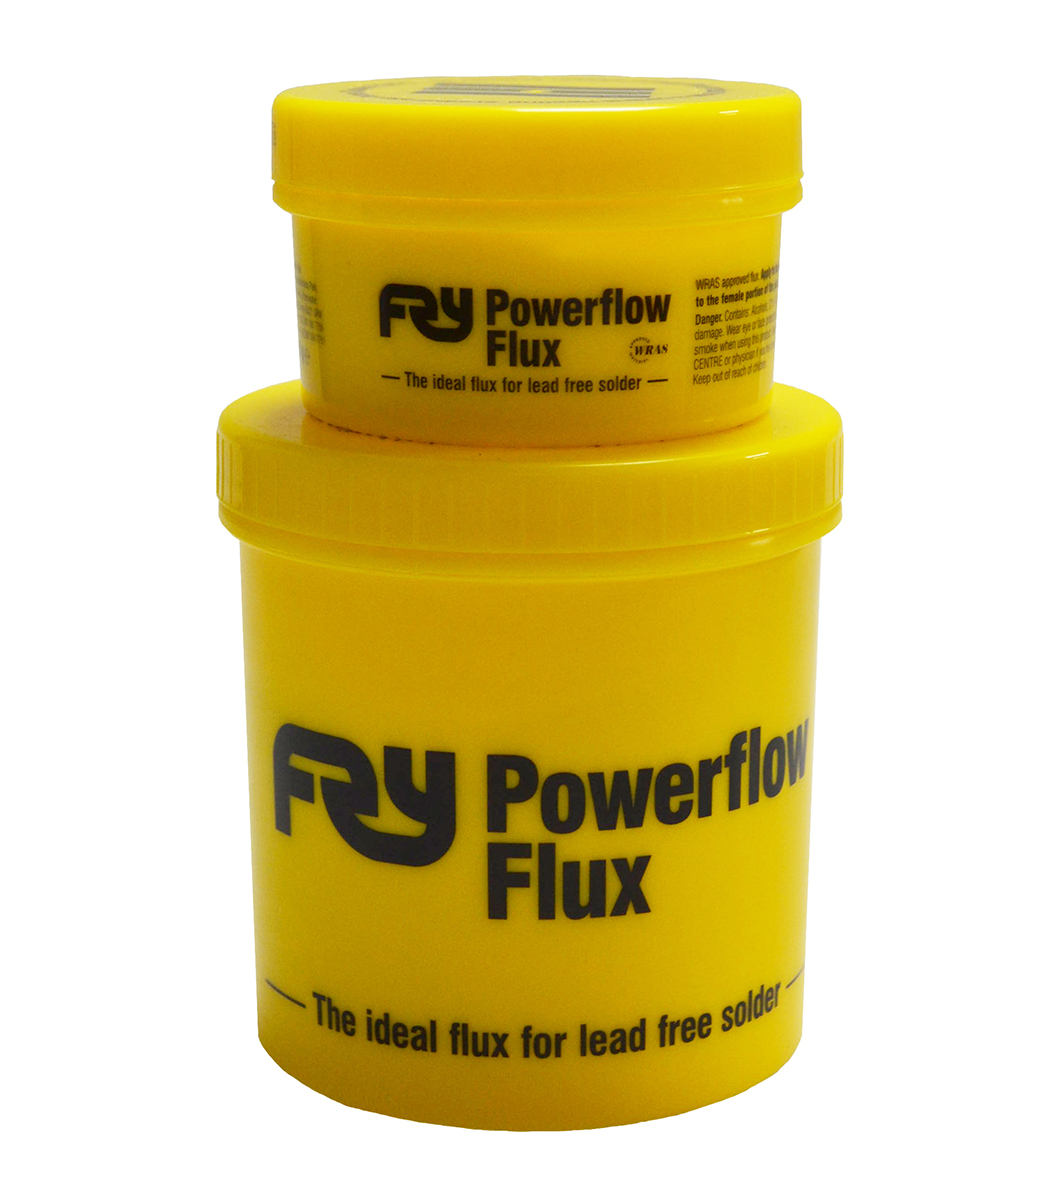 FRY's Powerflow Flux